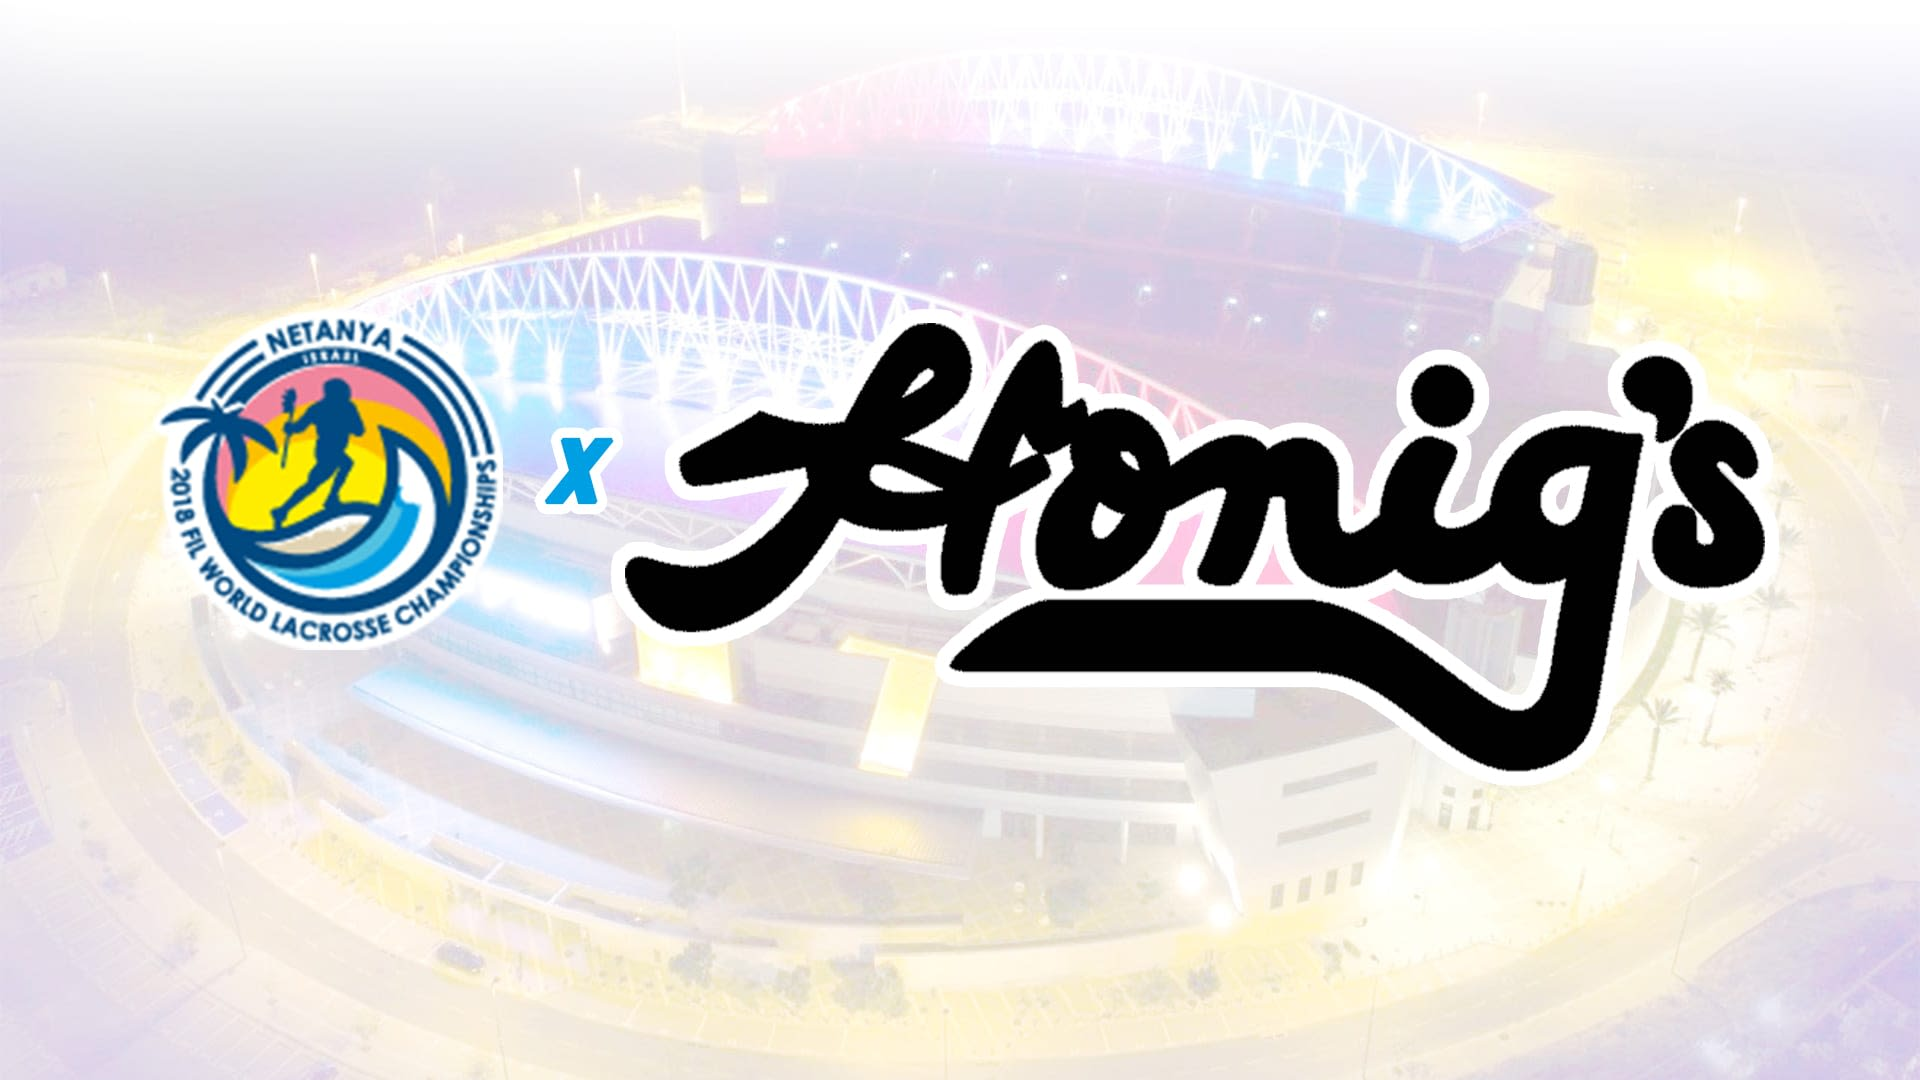 honig's official outfitter of world lacrosse championships